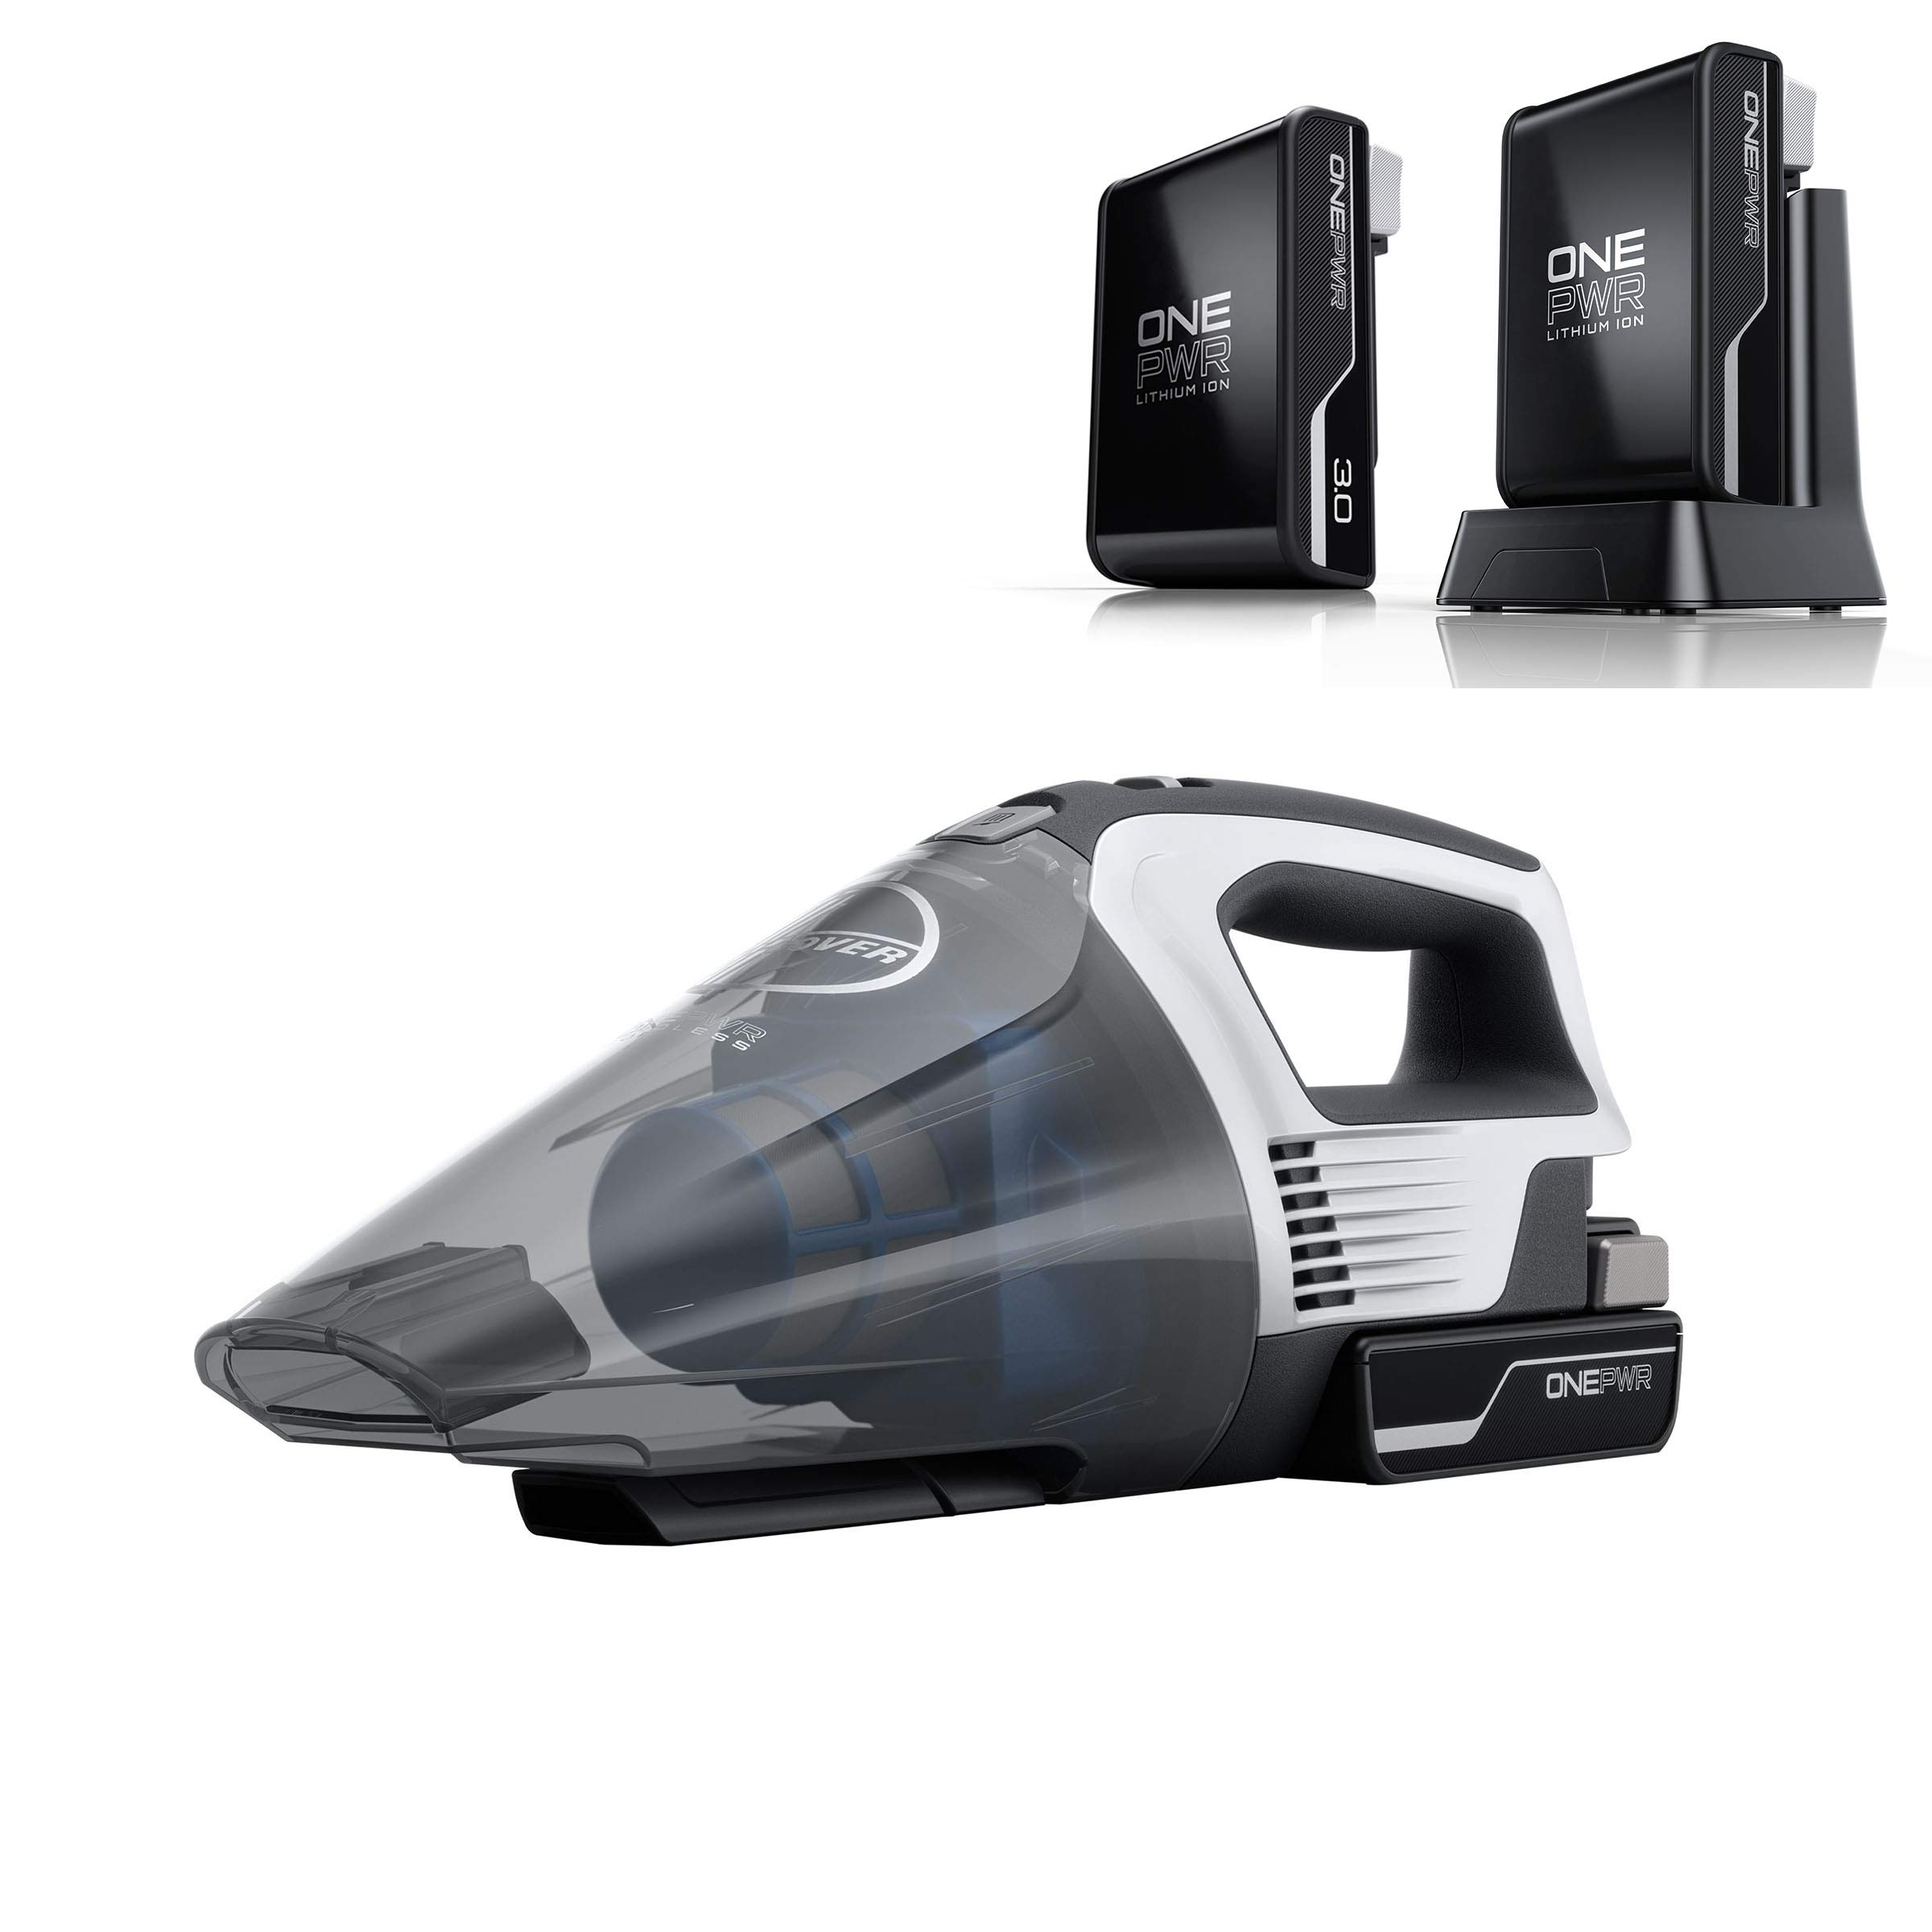 Hoover ONEPWR Cordless Hand Held Vacuum Cleaner with Additional 3Ah Battery, BH57005, BH15030